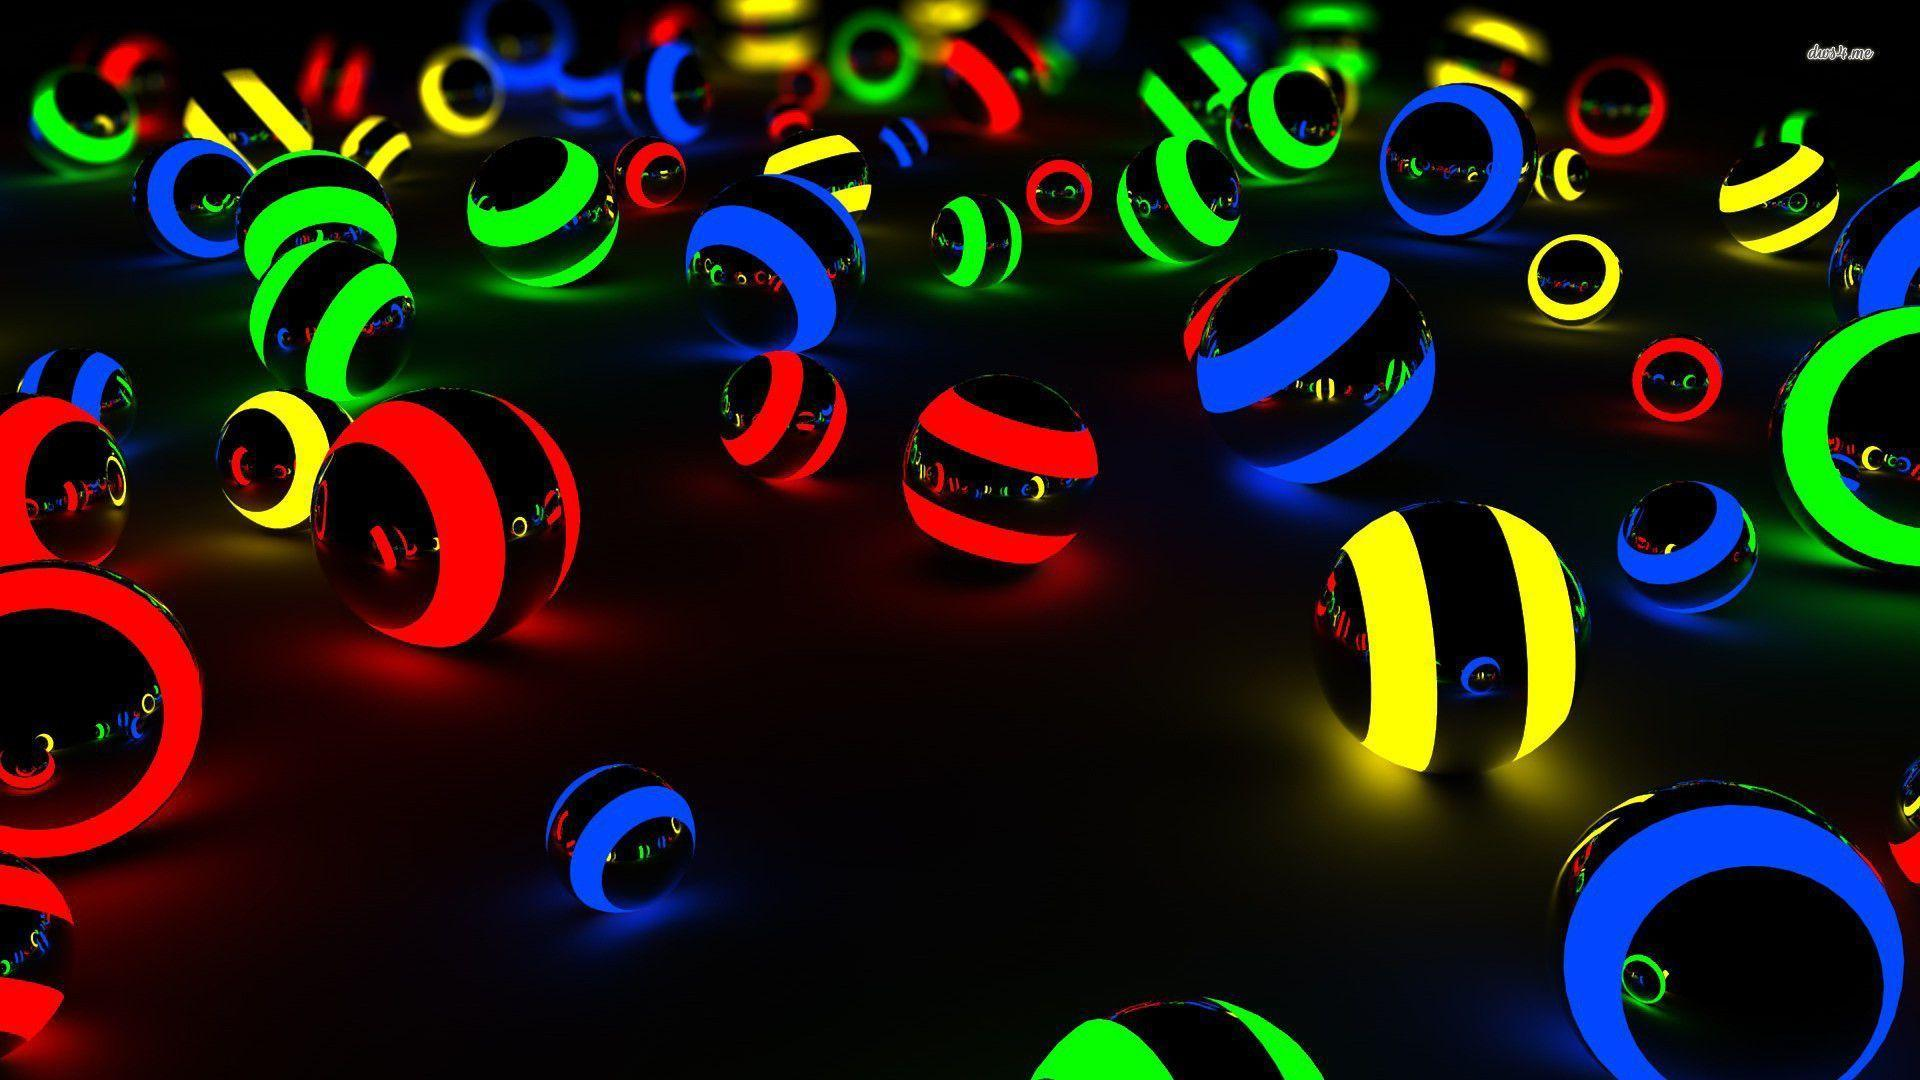 neon backgrounds hd - wallpaper cave